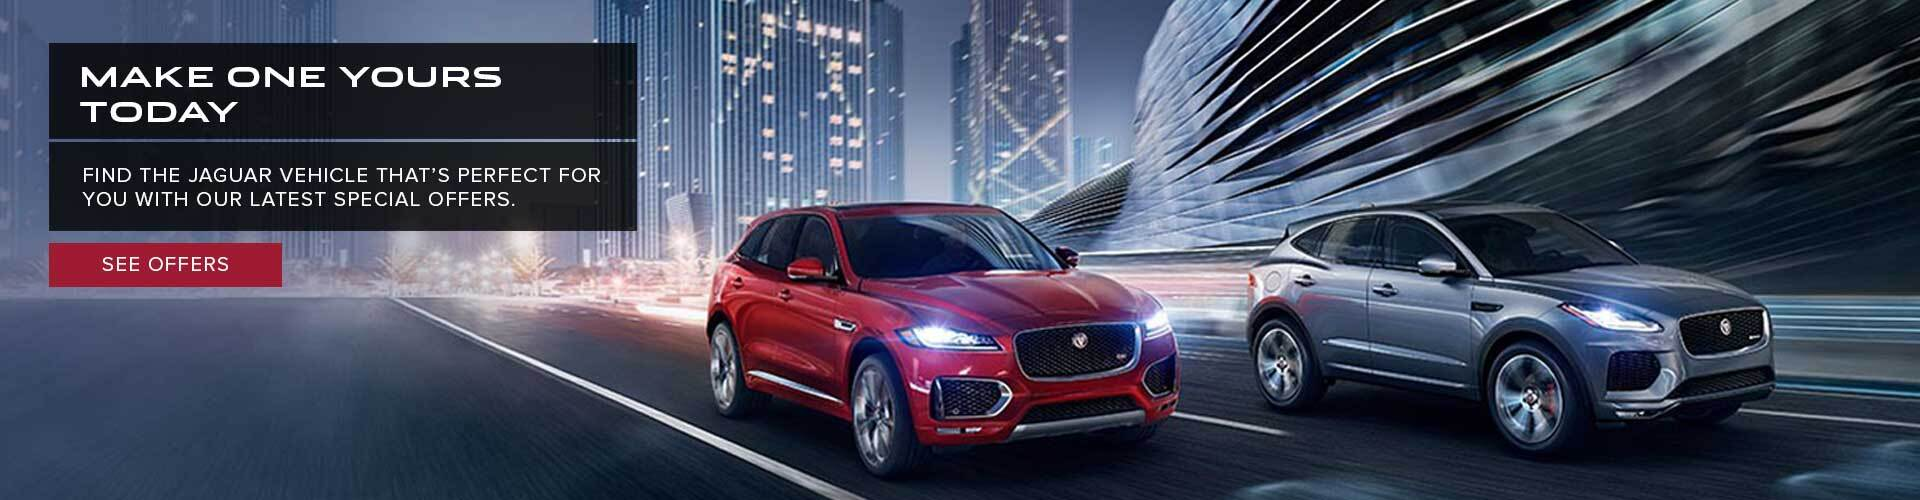 National Offers Jaguar